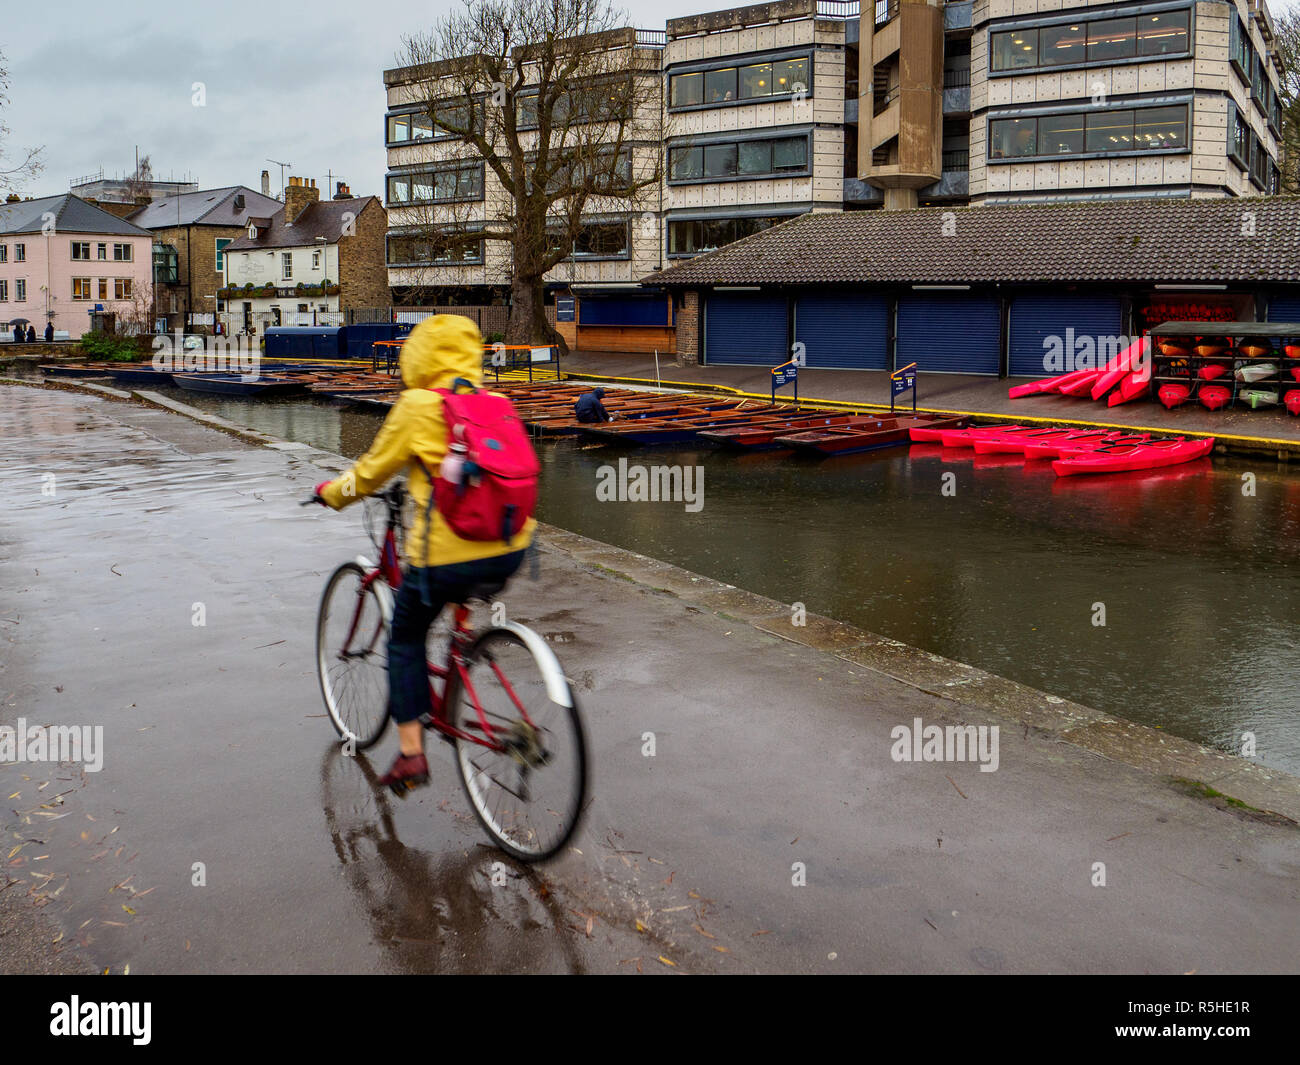 Cycling in the Rain next to the River Cam in central Cambridge UK - Stock Image